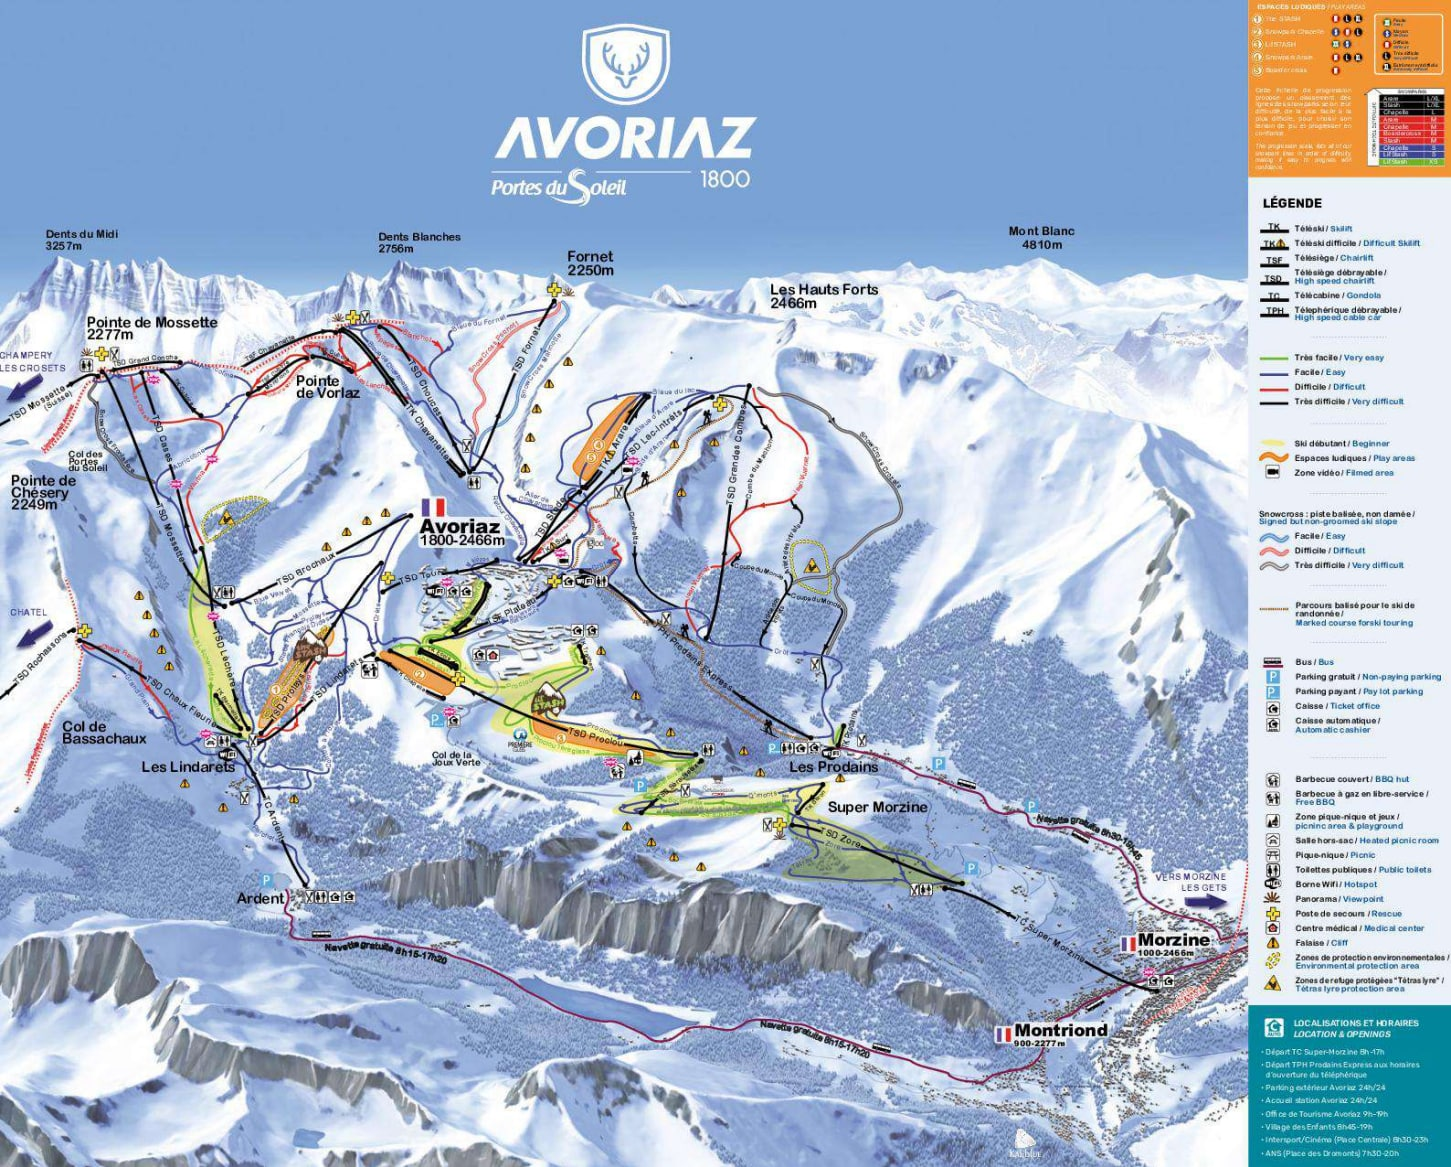 Avoriaz Piste / Trail Map